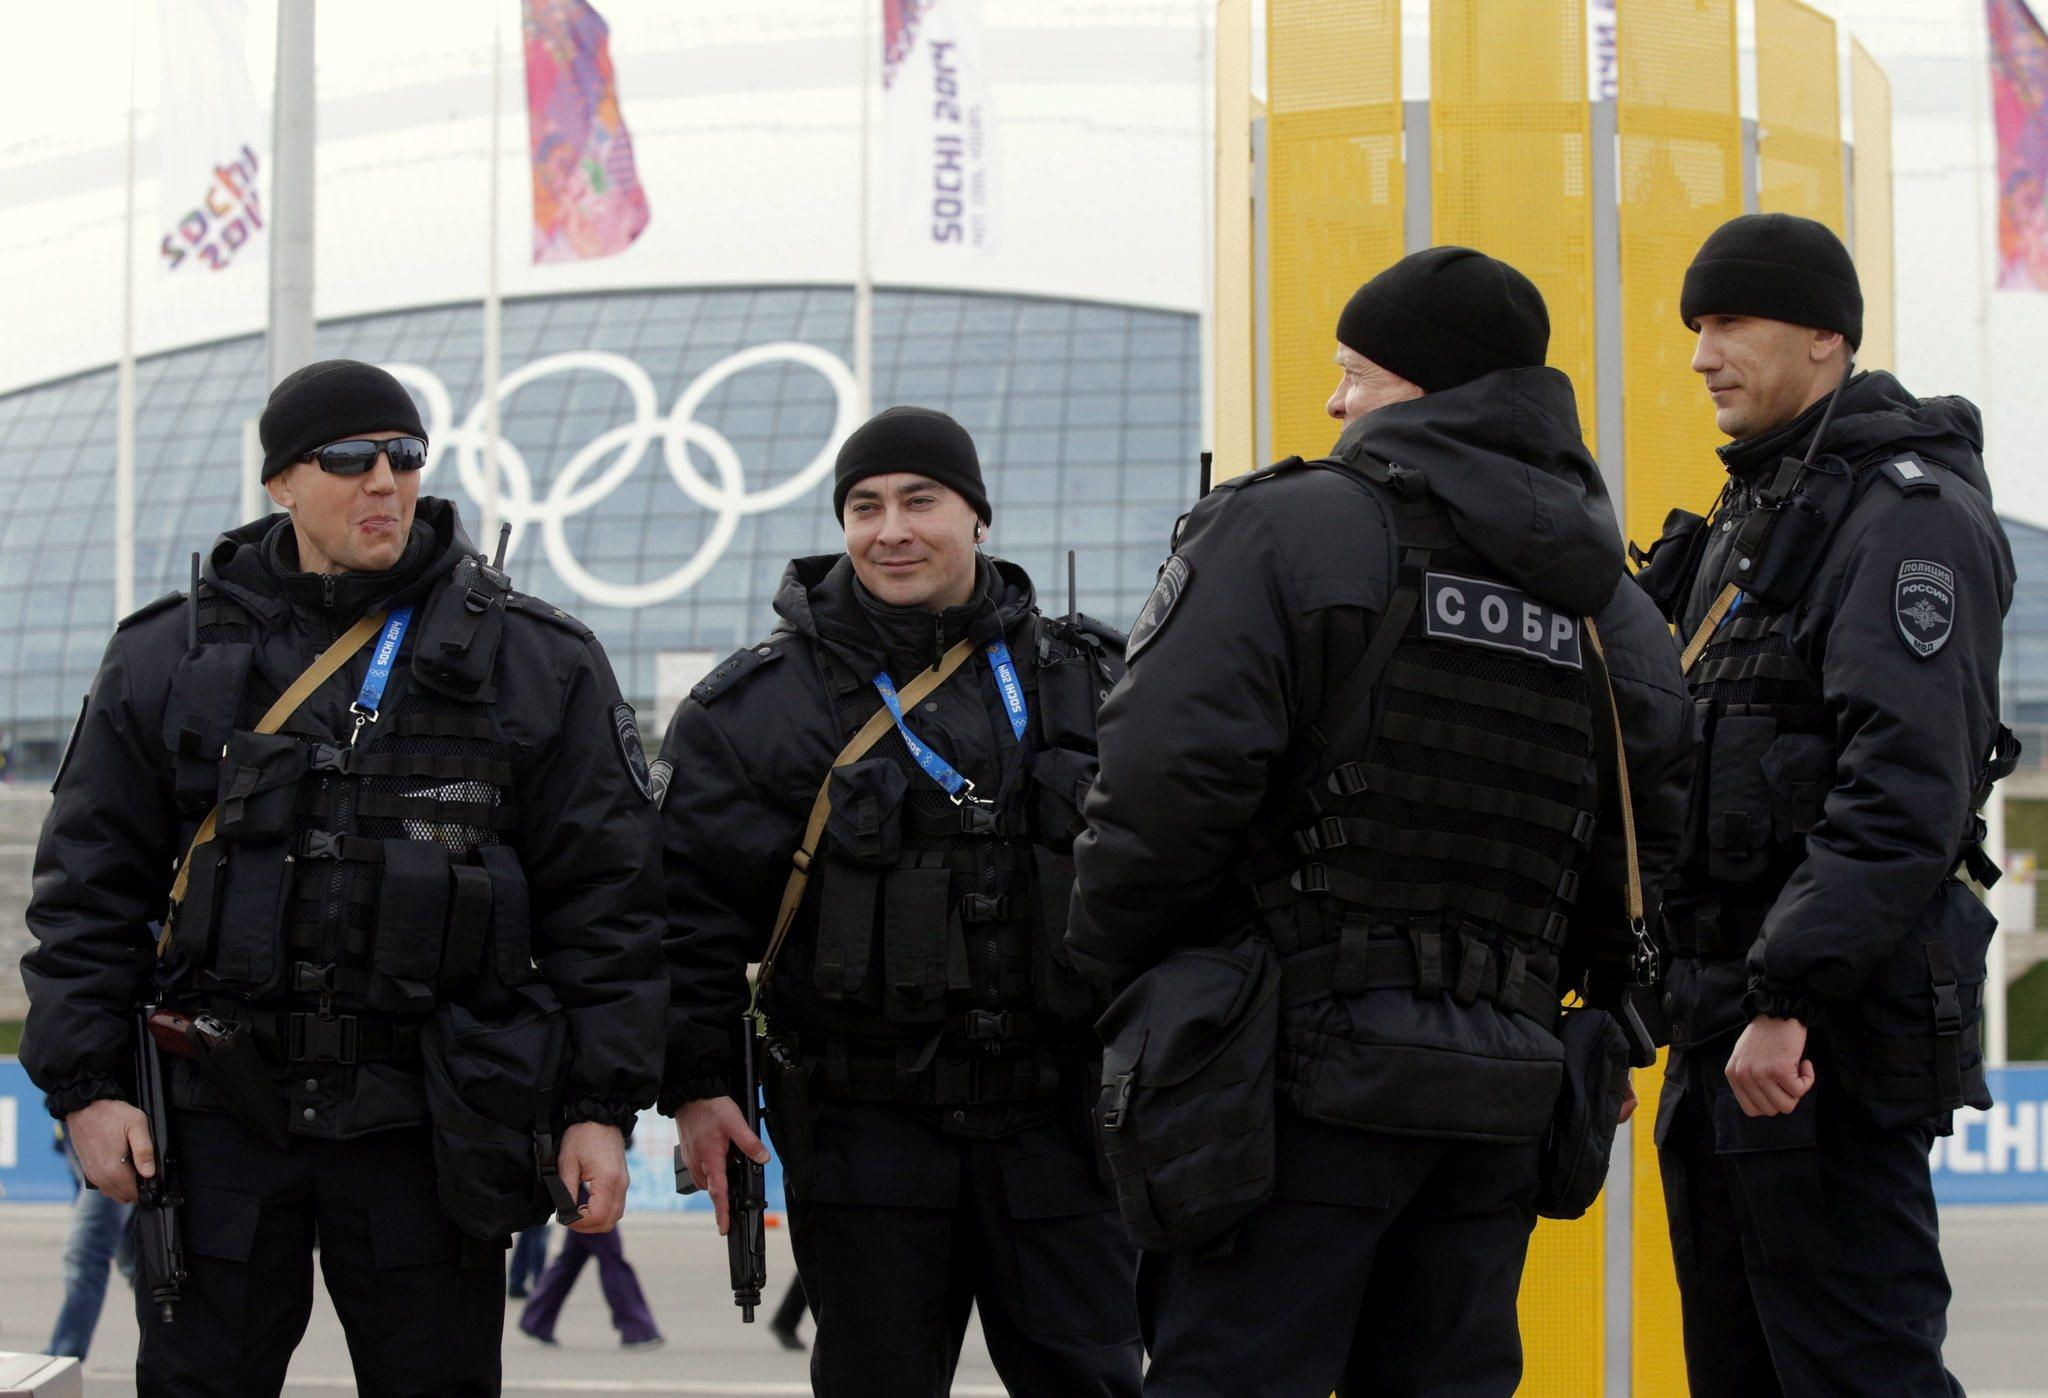 Russian special forces officers in the Olympic Park in Sochi, Russia. at the 2014 Winter Games.